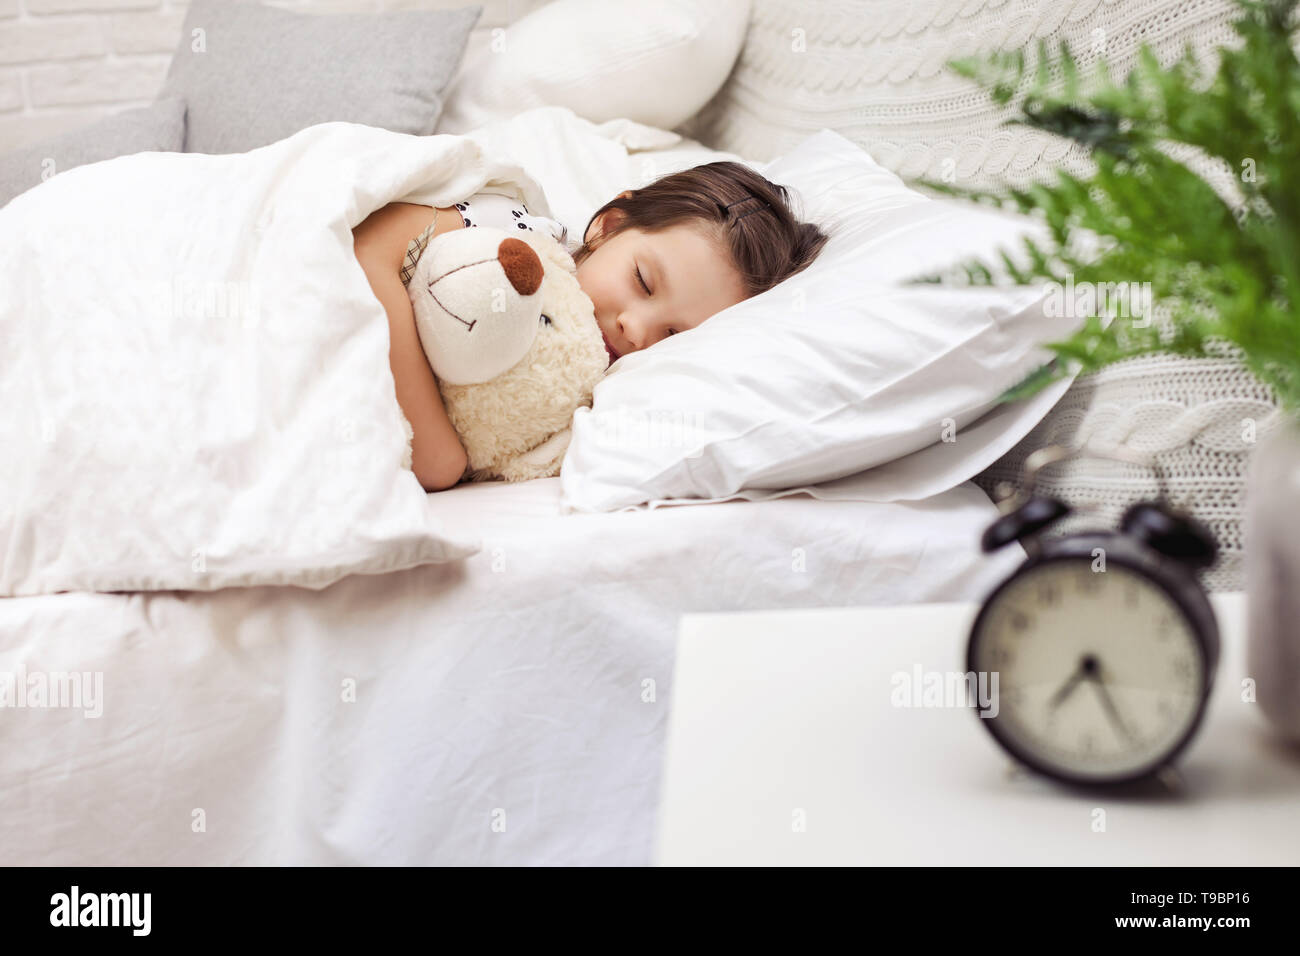 6ecee7fc9570 Cute little child girl sleeping with teddy bear in her bed Stock ...